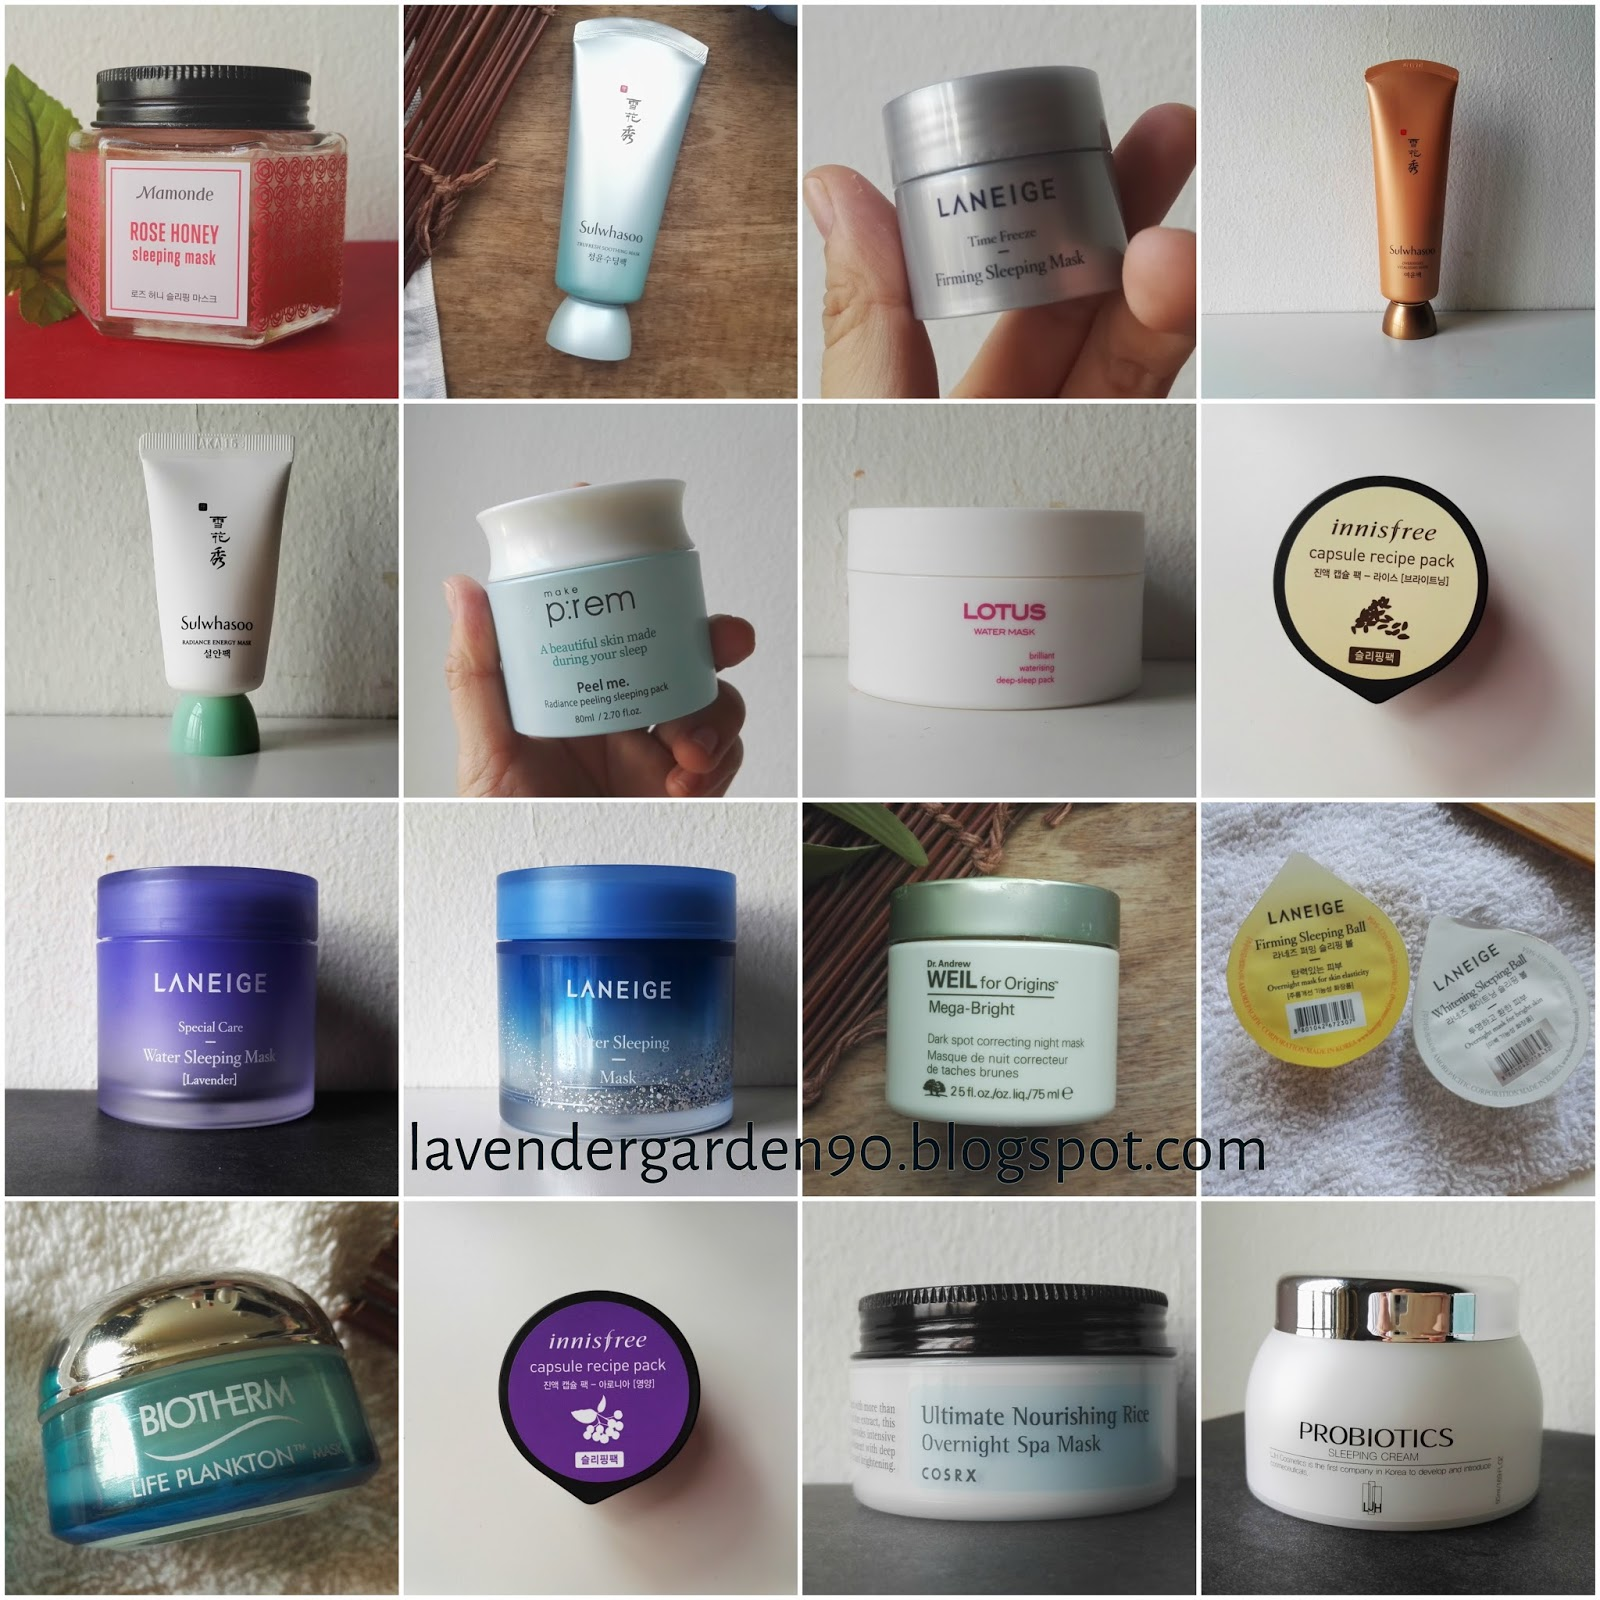 Carolyns Lavender Garden Best Of Beauty Award 2017 Biore Bubble Bundle Bright Care Cosrx Ultimate Nourishing Rice Overnight Spa Mask Dr Andrew Weil For Origins Mega Goodal Waterest Vital Sleeping Pack